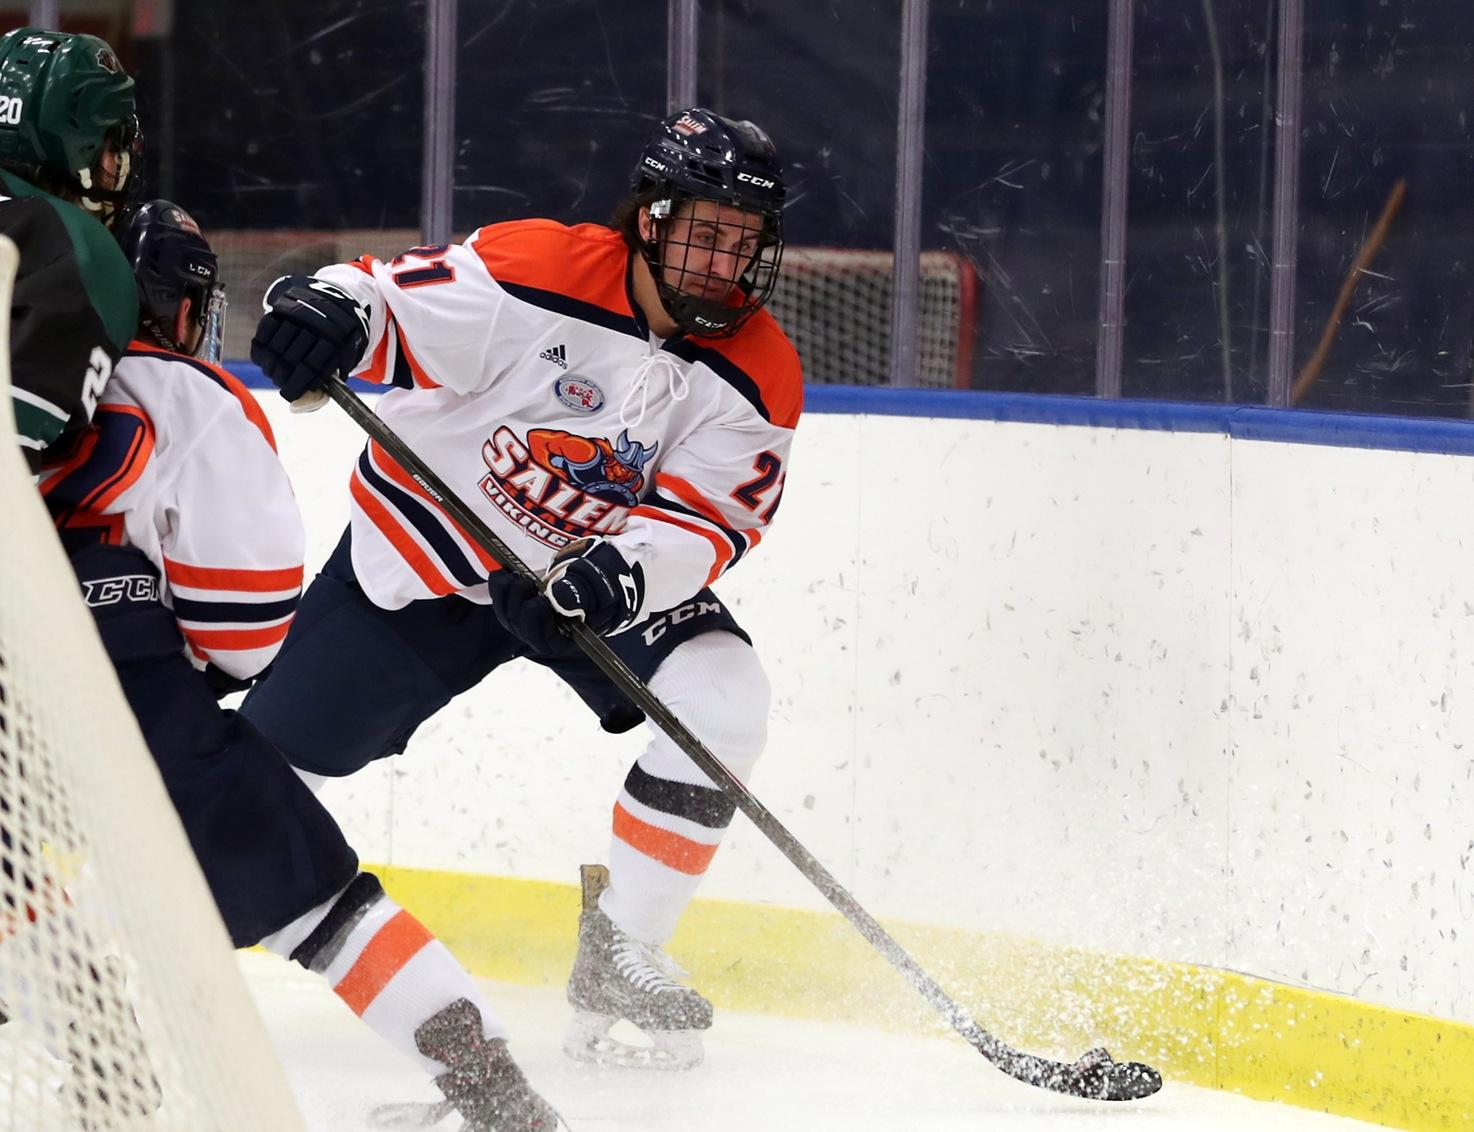 Salem State's Postseason Run Ends With 3-0 Loss to Plymouth State in MASCAC Final